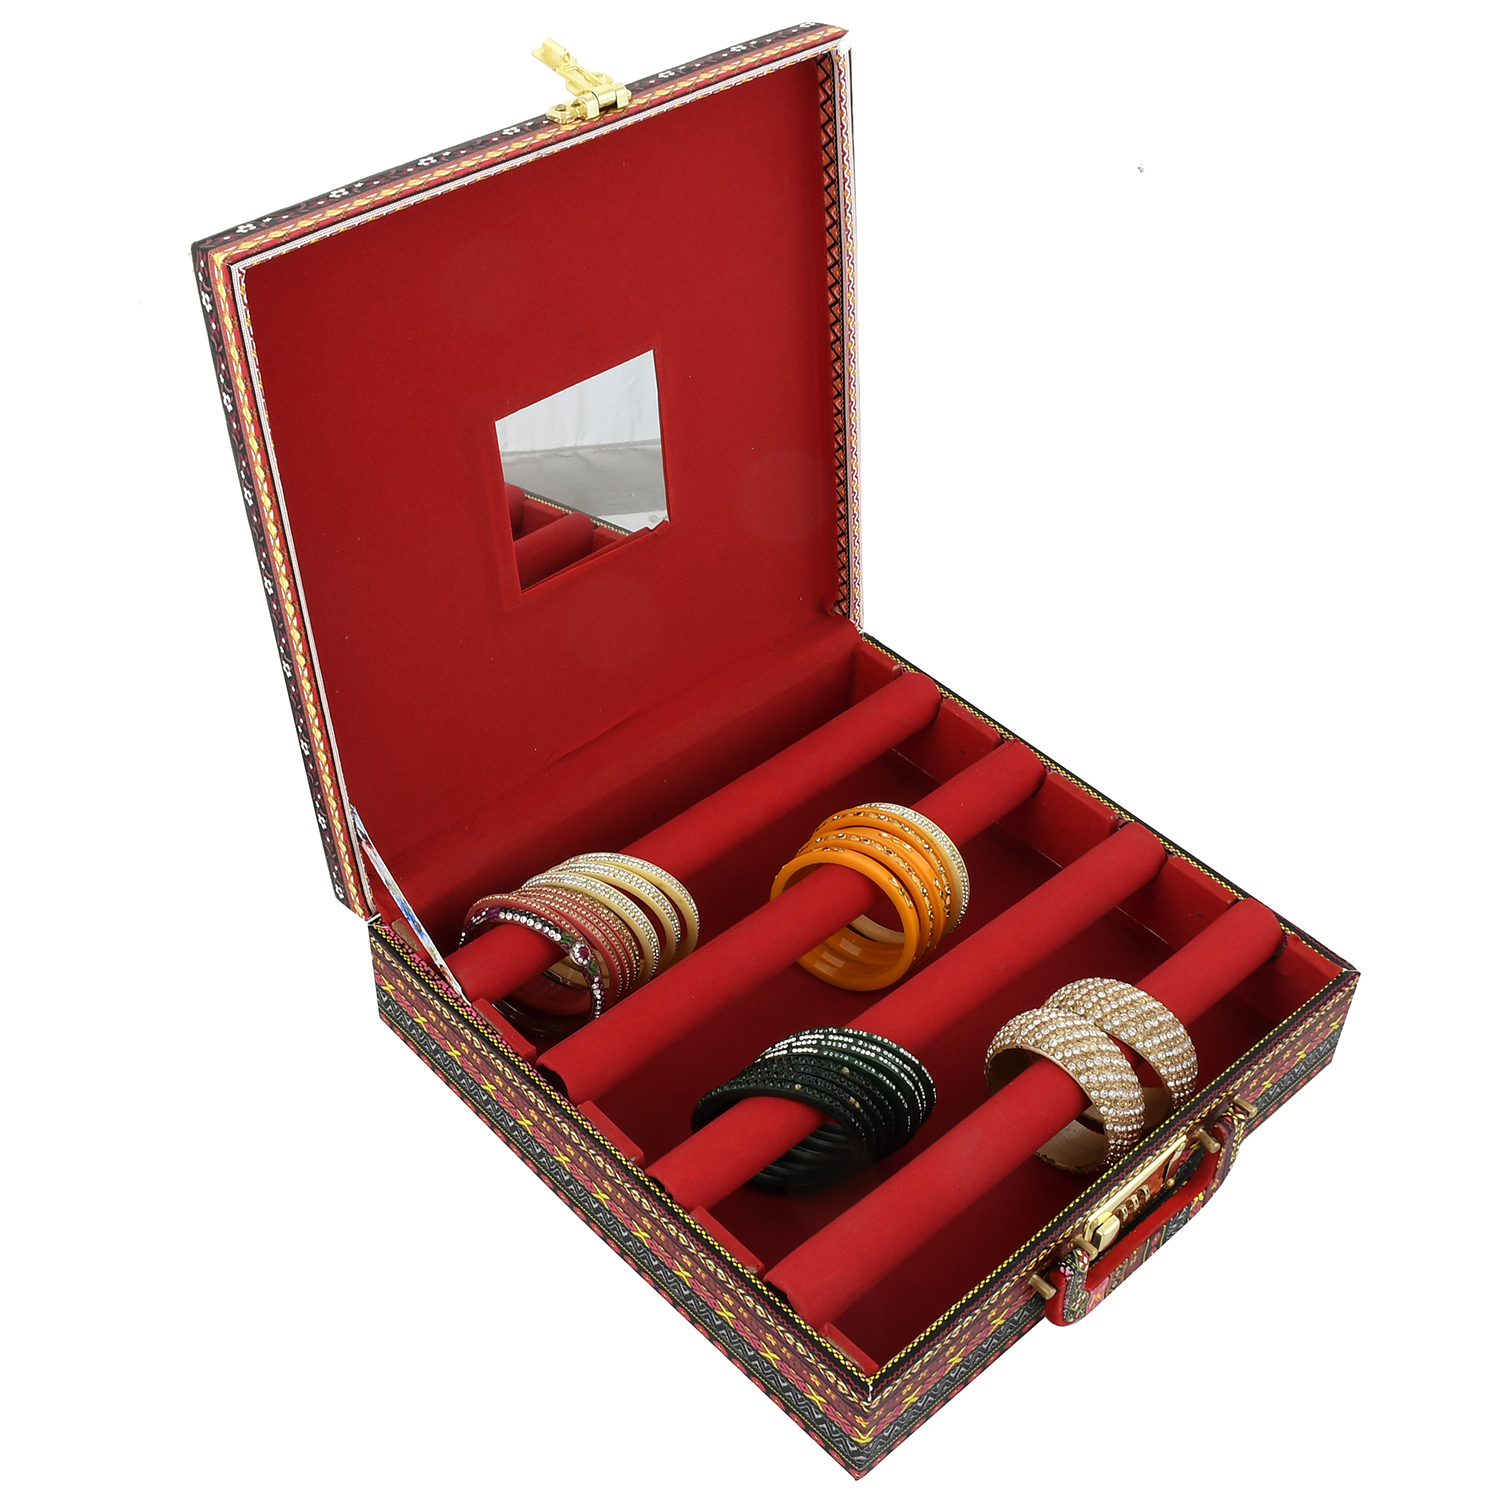 Kuber Industries Lining Design Wooden 1 Piece Four Rod Bangle Storage Box with Lock System (Maroon)  -CTKTC42362